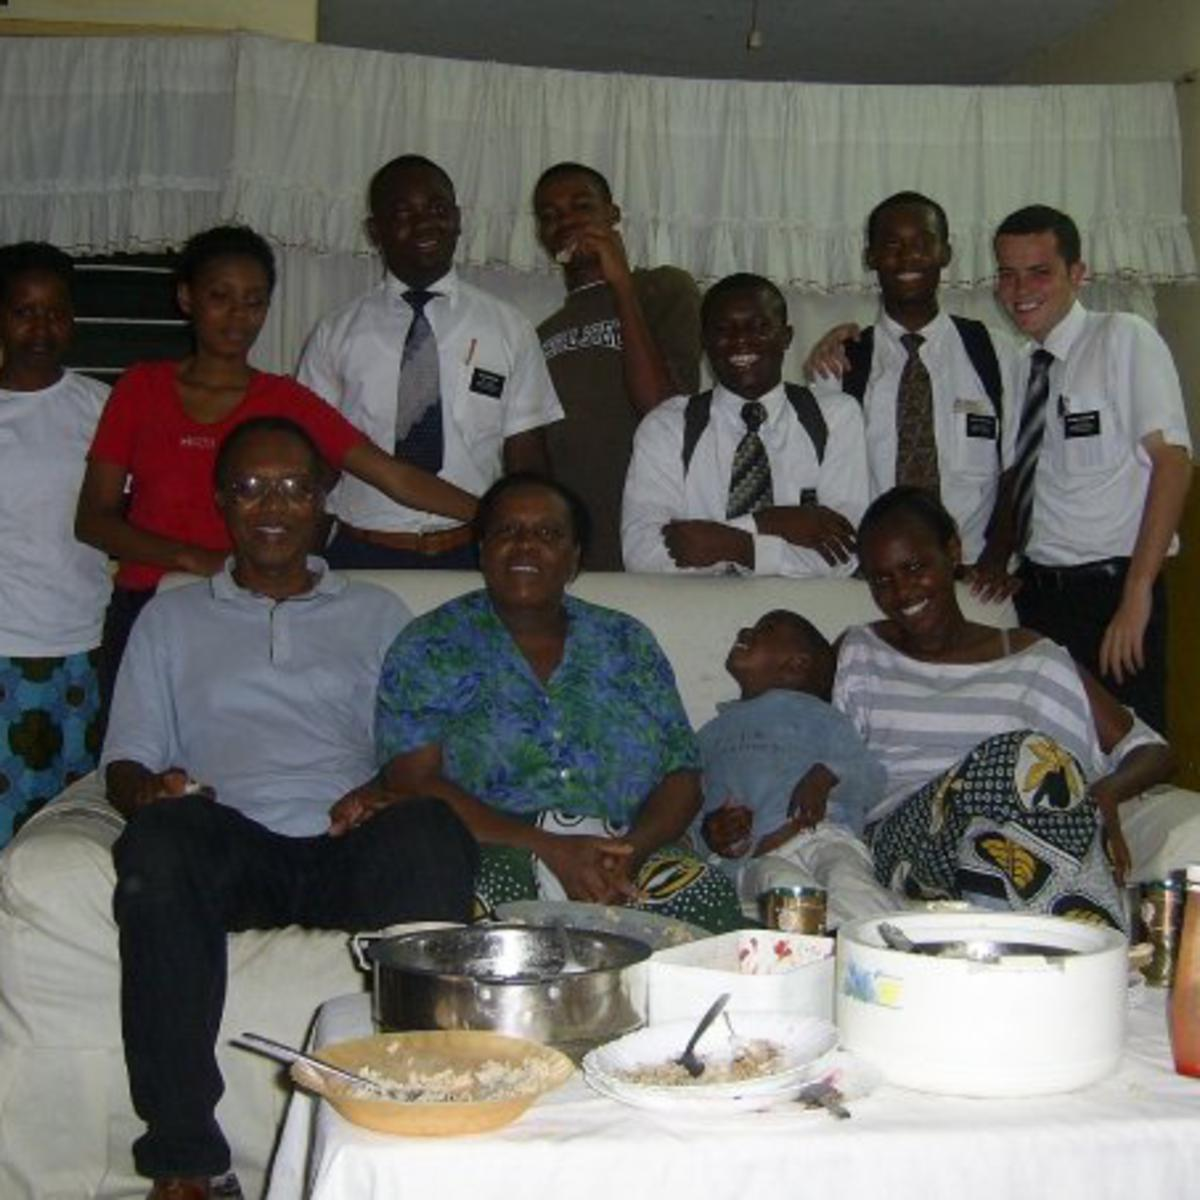 image of missionaries and family in Kenya